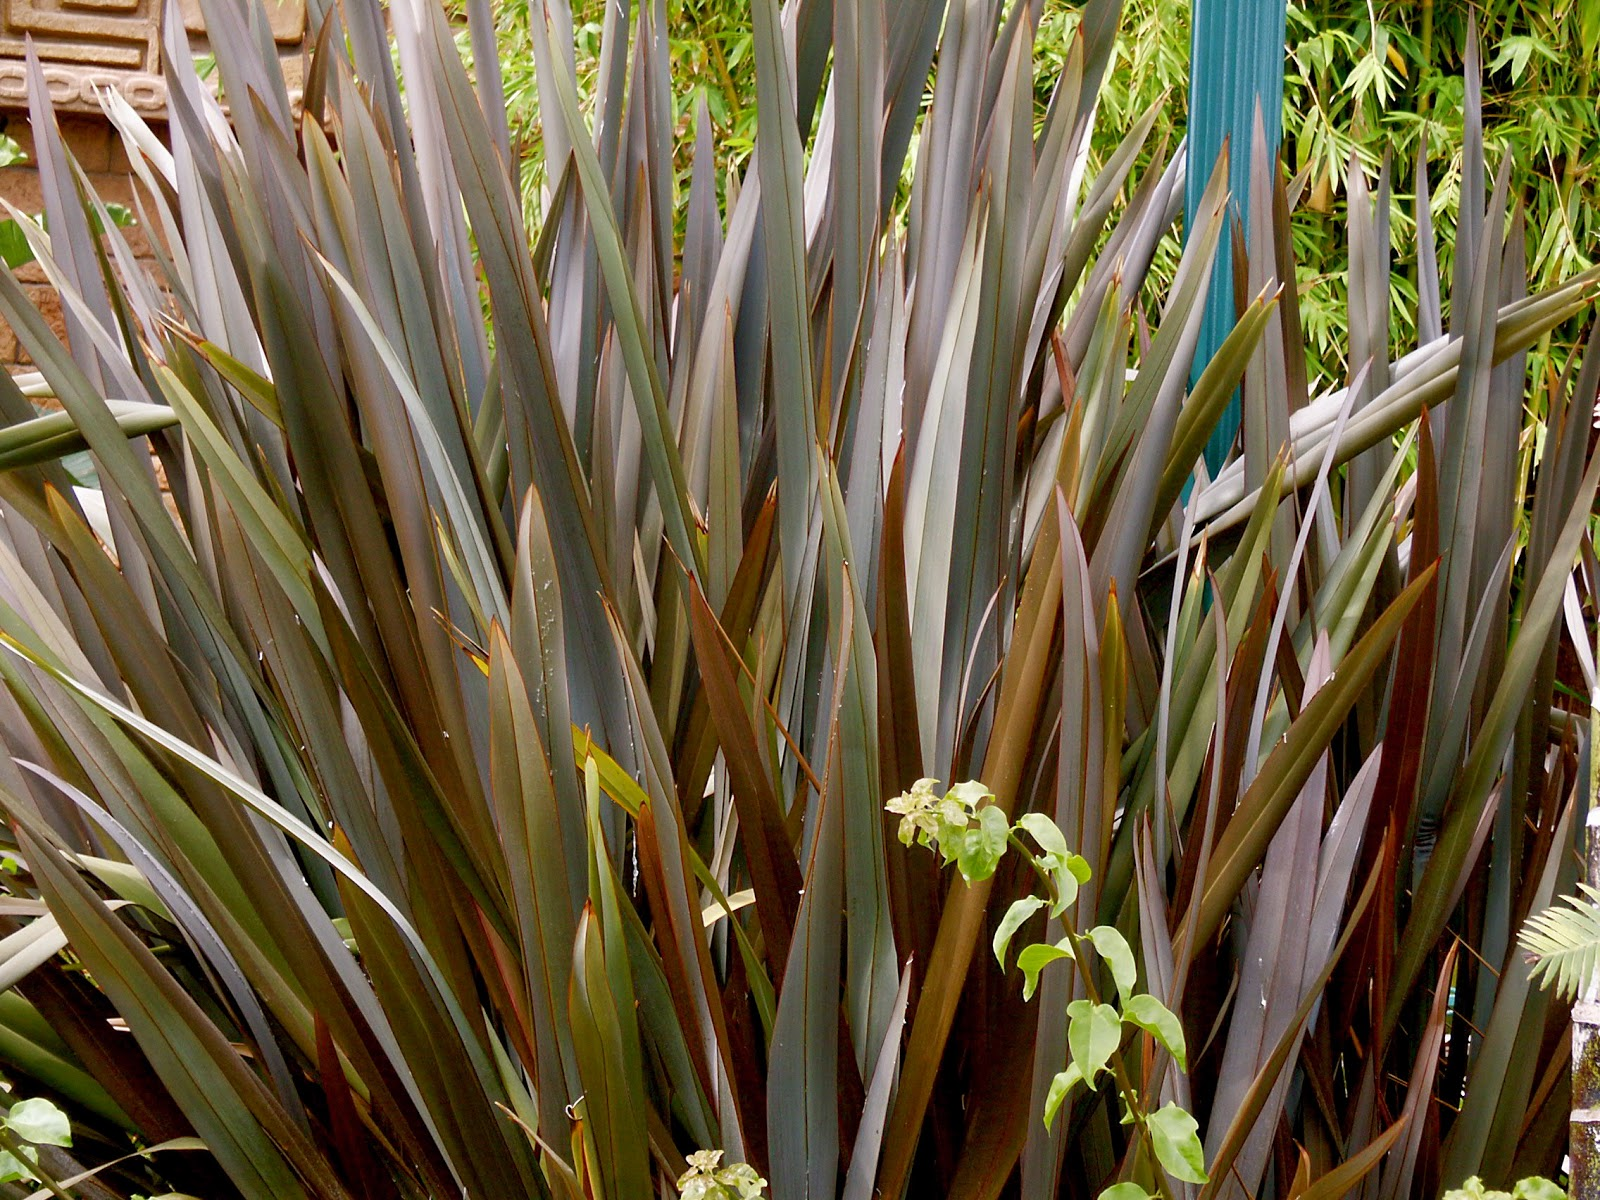 New zealand flax the aspiring gardener for Large ornamental grass plants